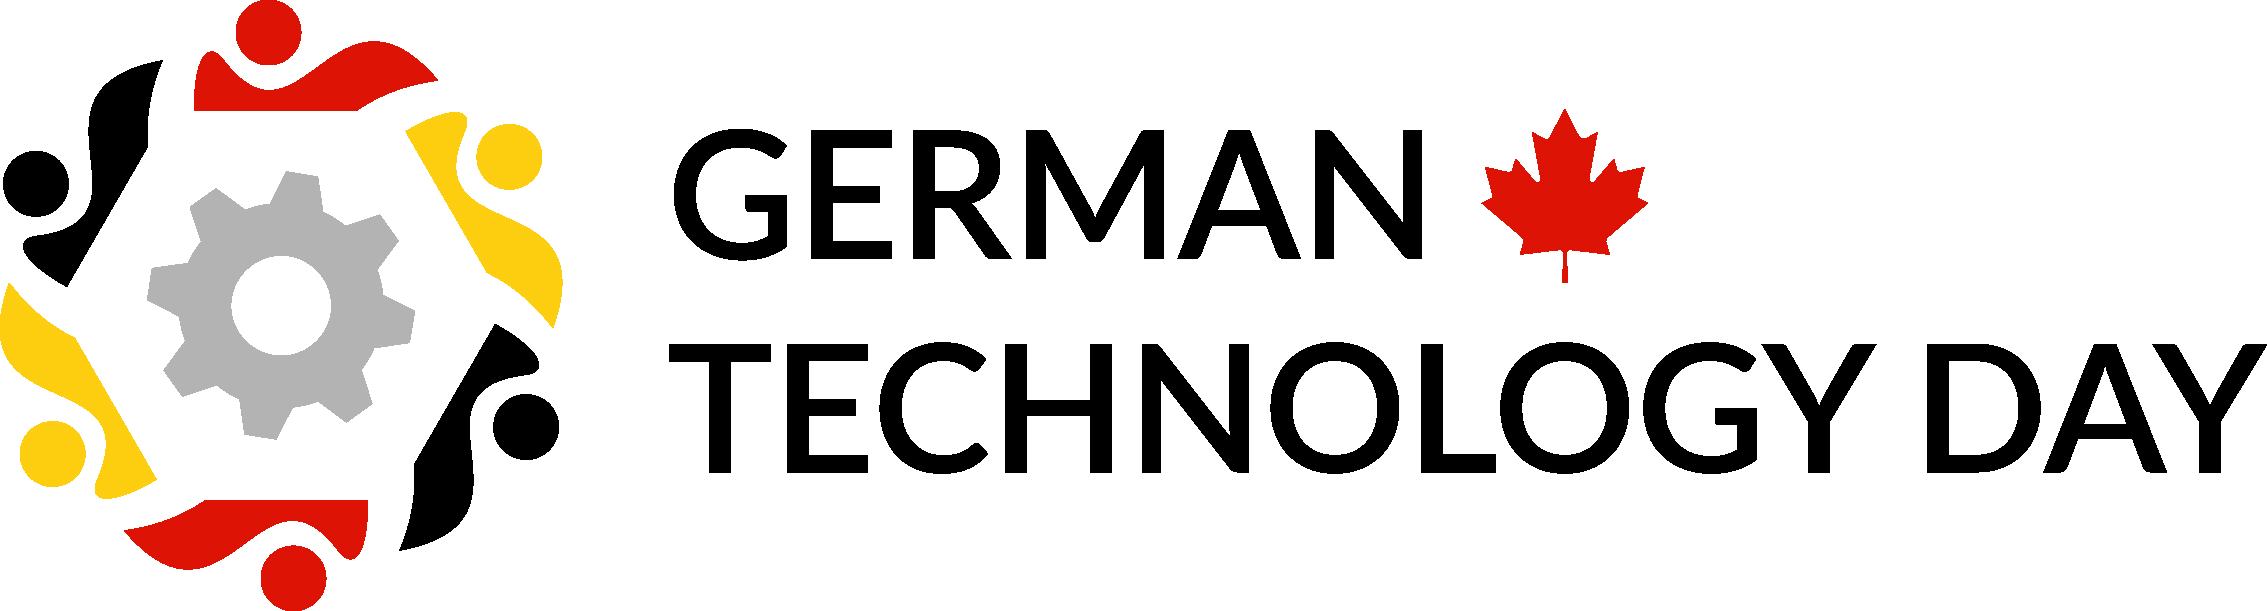 German Technology Days